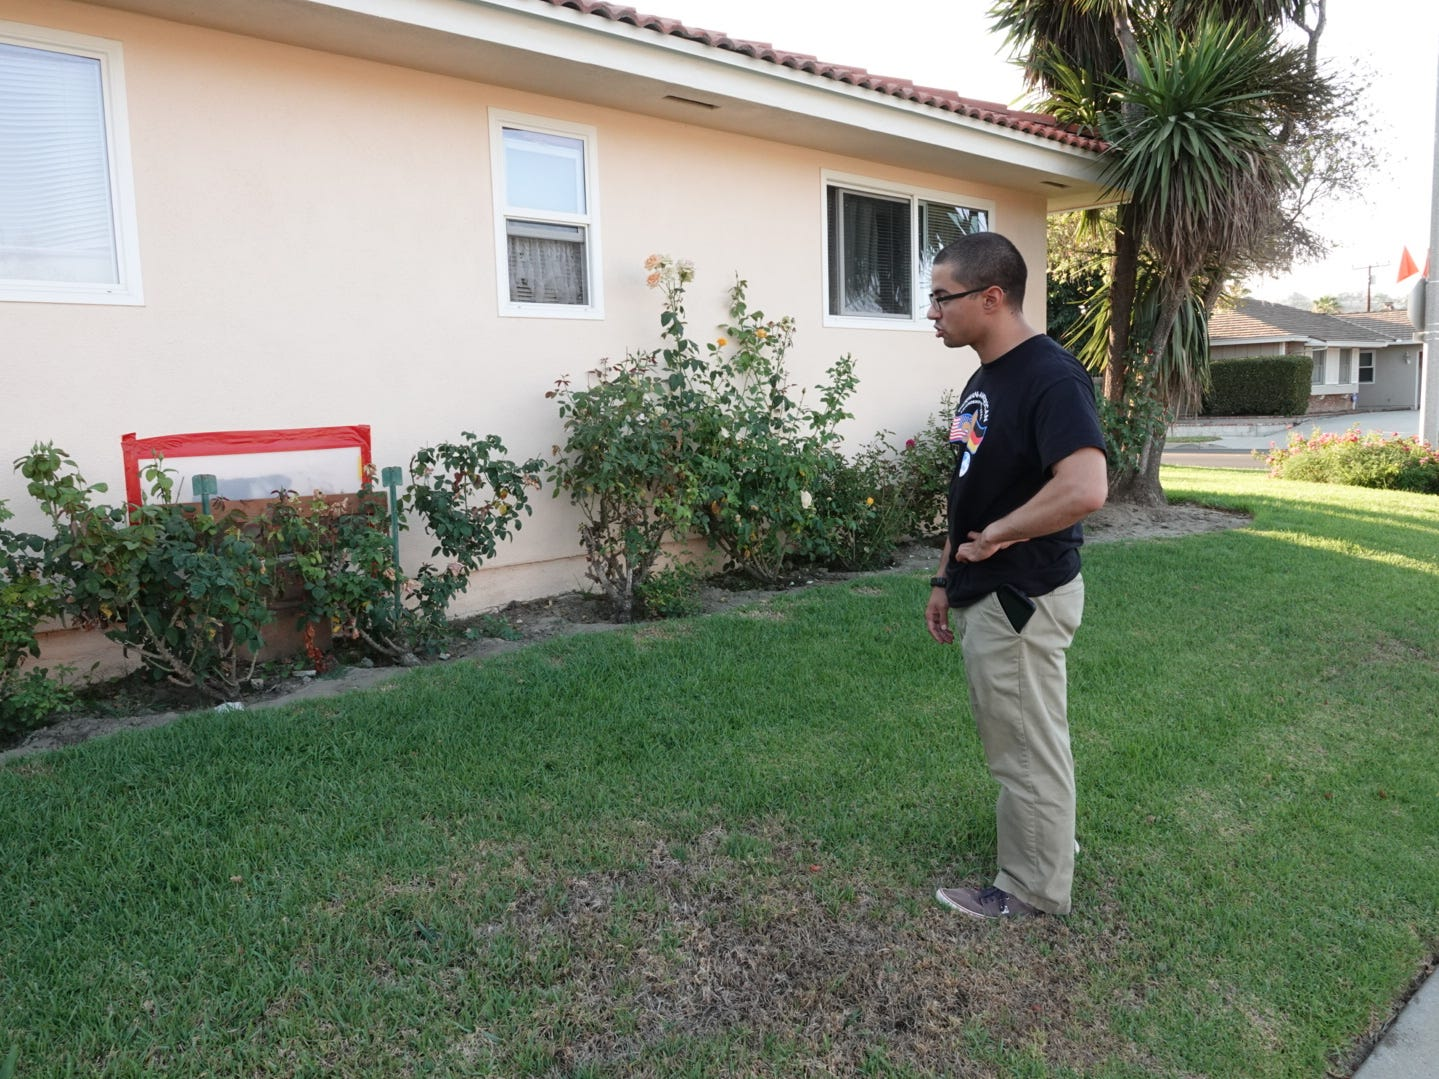 Ross Fandey looks at the patched wall of his family's Camarillo home where an SUV crashed on Father's Day. The city recently installed four-way stop signs at the intersection of Lantana and Coe streets, which residents had been requesting for years because of such incidents.